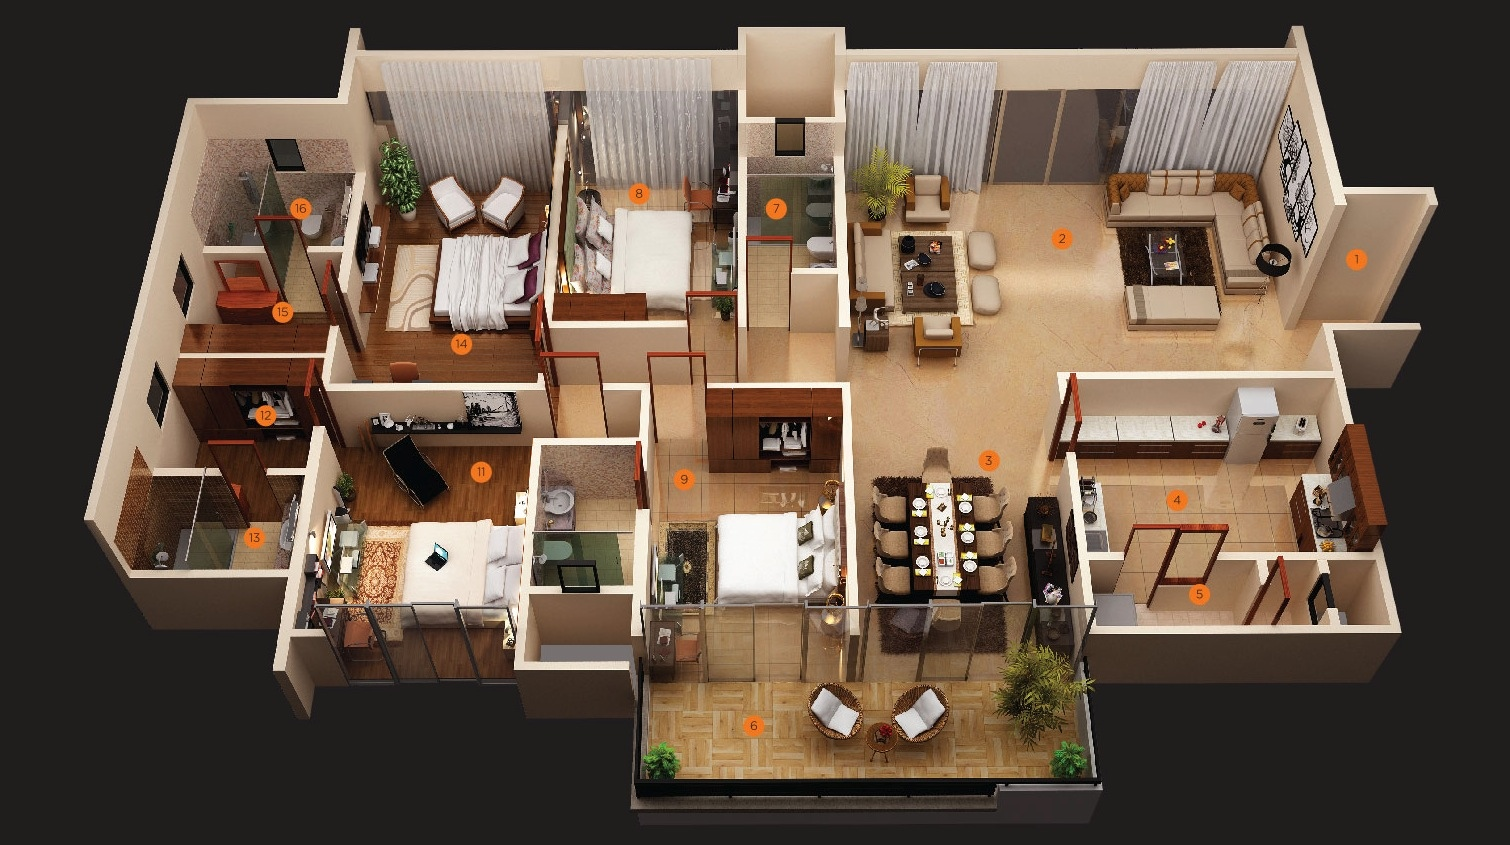 4 Bedroom Building Plan Of Four Bedroom Decor Ideas Interior Design Ideas